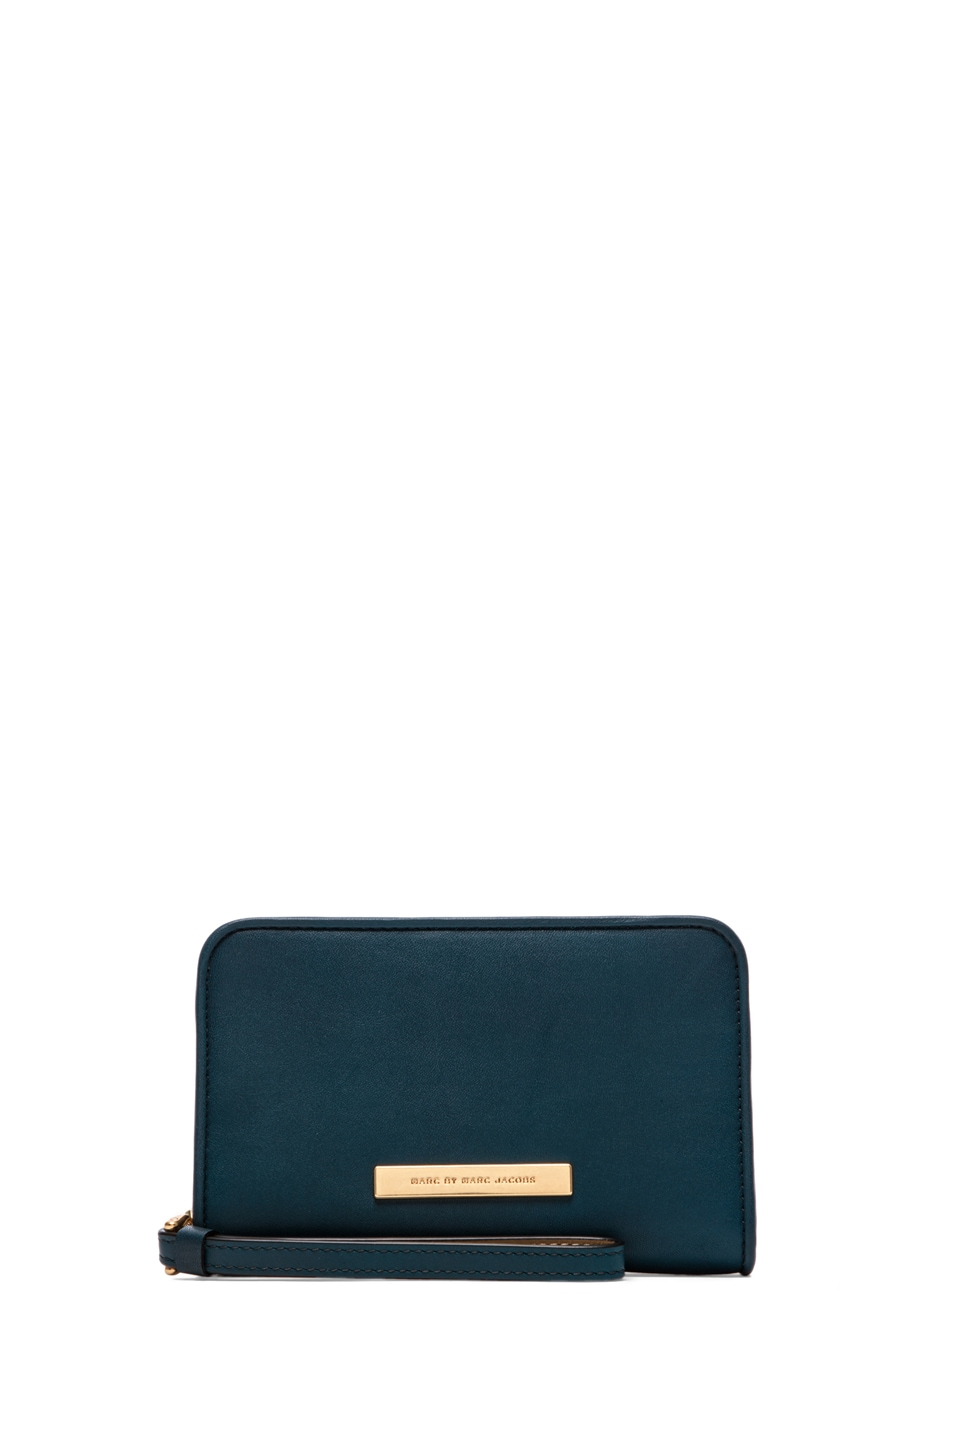 Marc by Marc Jacobs Luna Wingman Wallet in Hopper Green